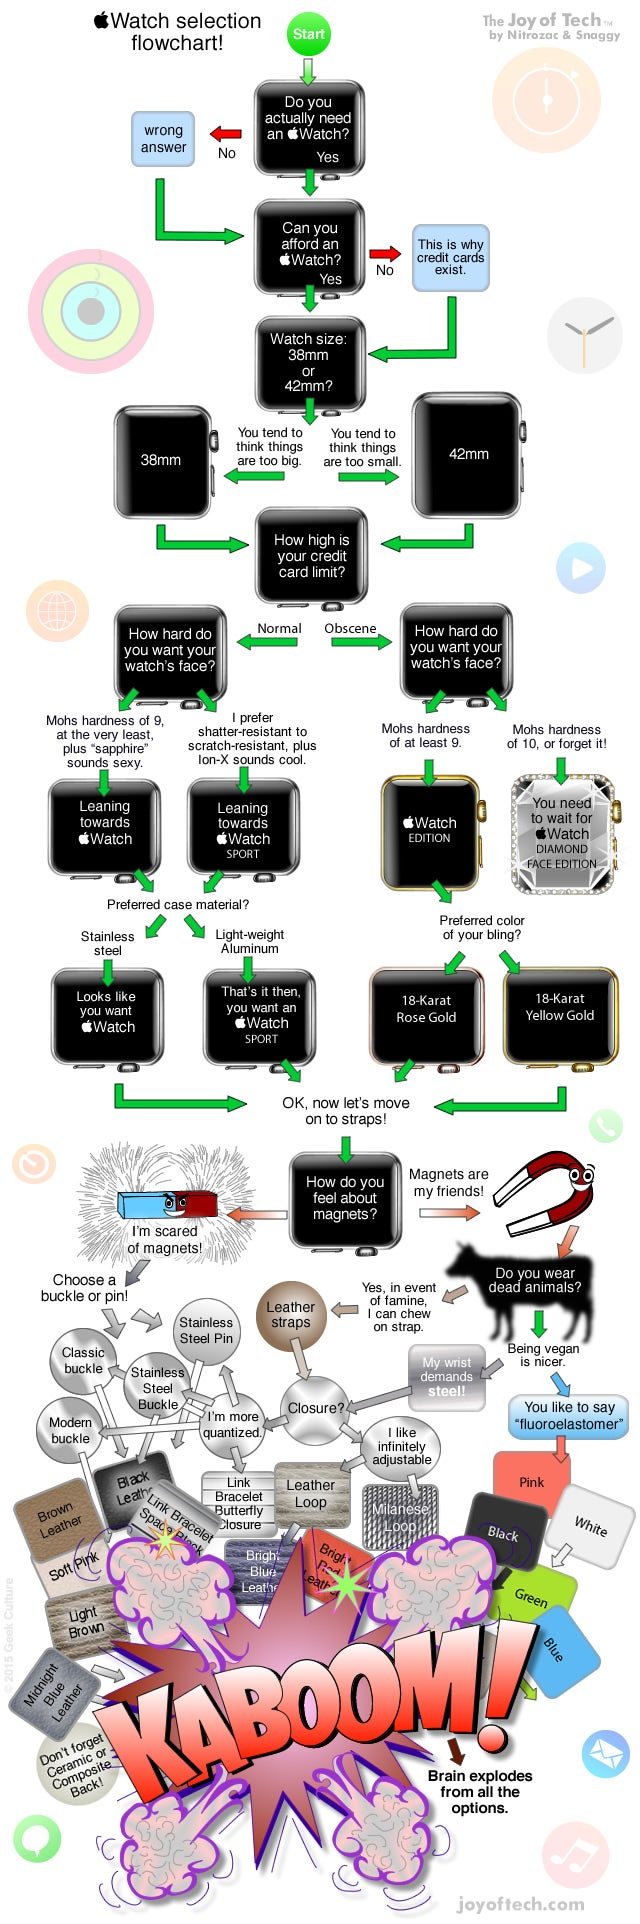 A fun flowchart to help you choose which apple watch to buy a fun flowchart to help you choose which apple watch to buy nvjuhfo Choice Image